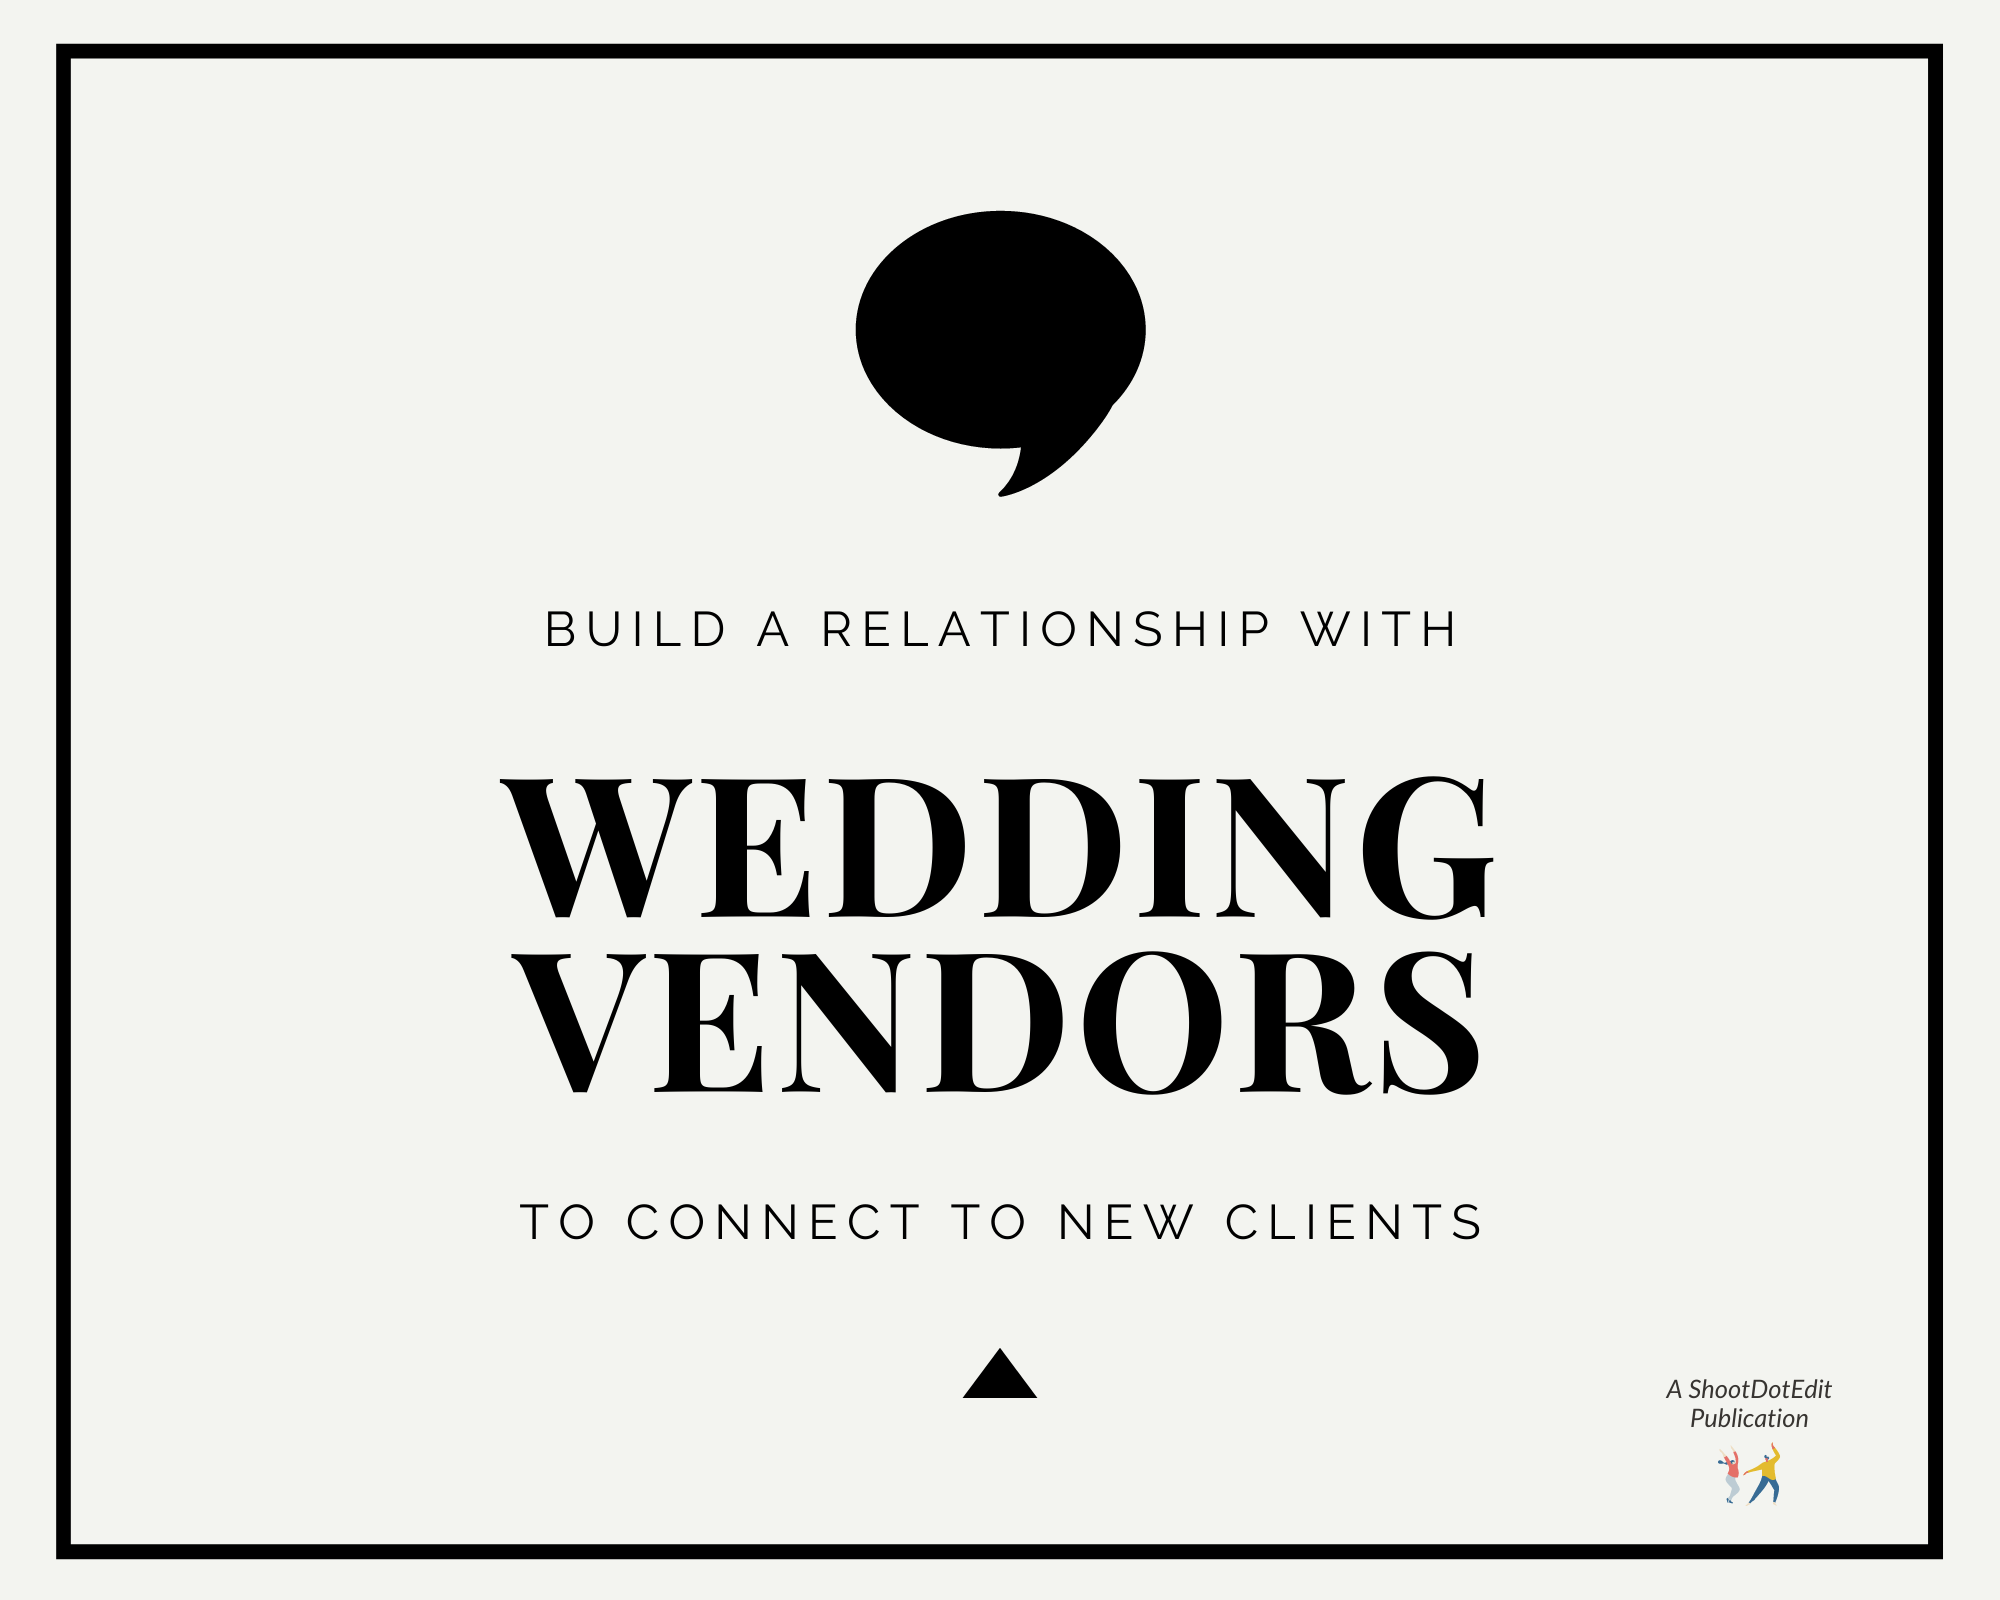 Infographic stating build a relationship with wedding vendors to connect to new clients